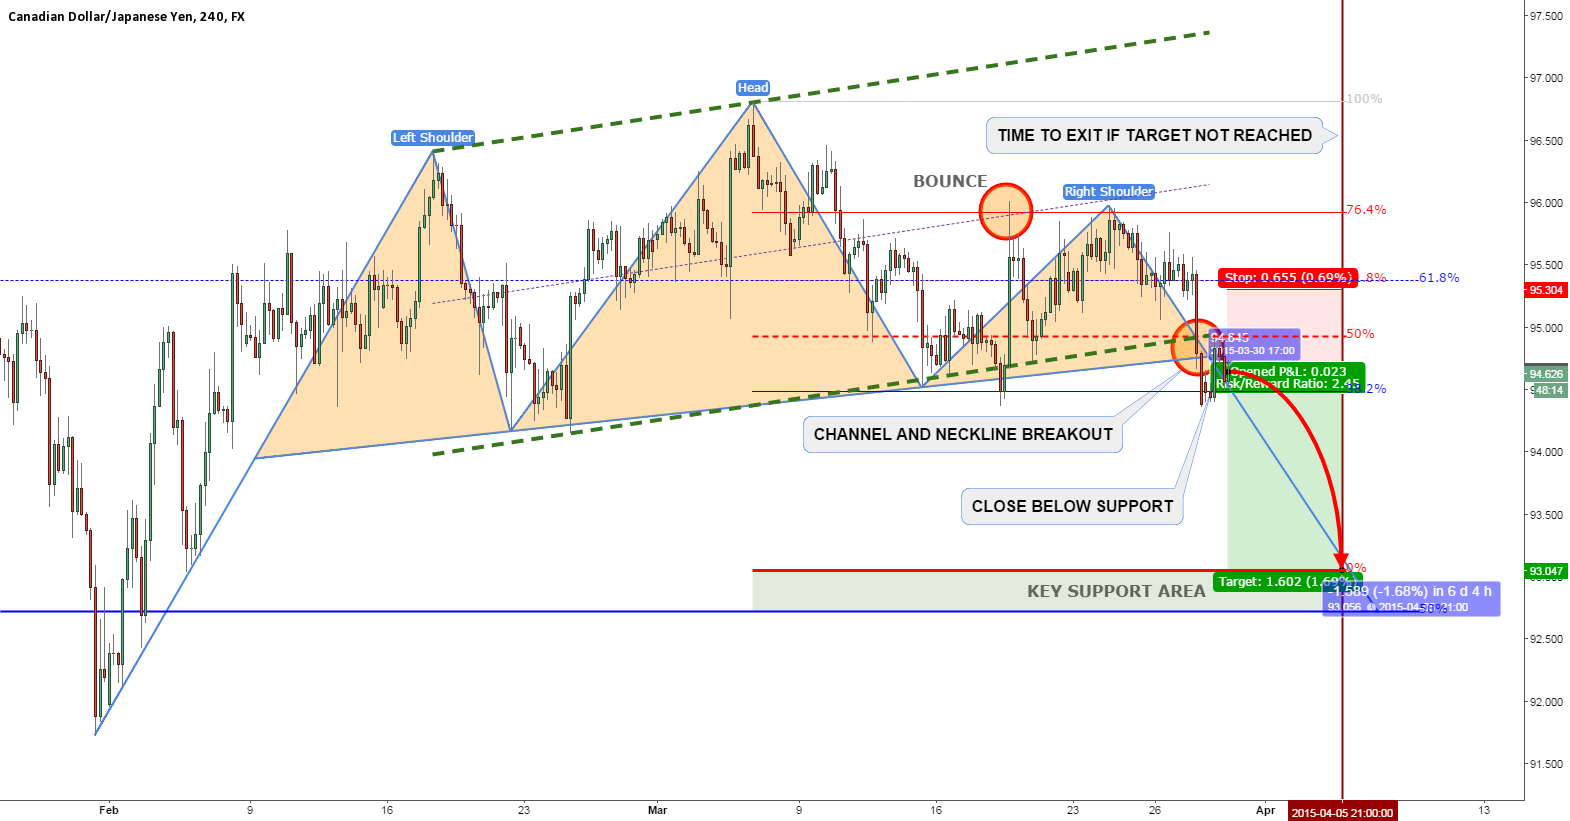 CADJPY SHORT TRADE SETUP